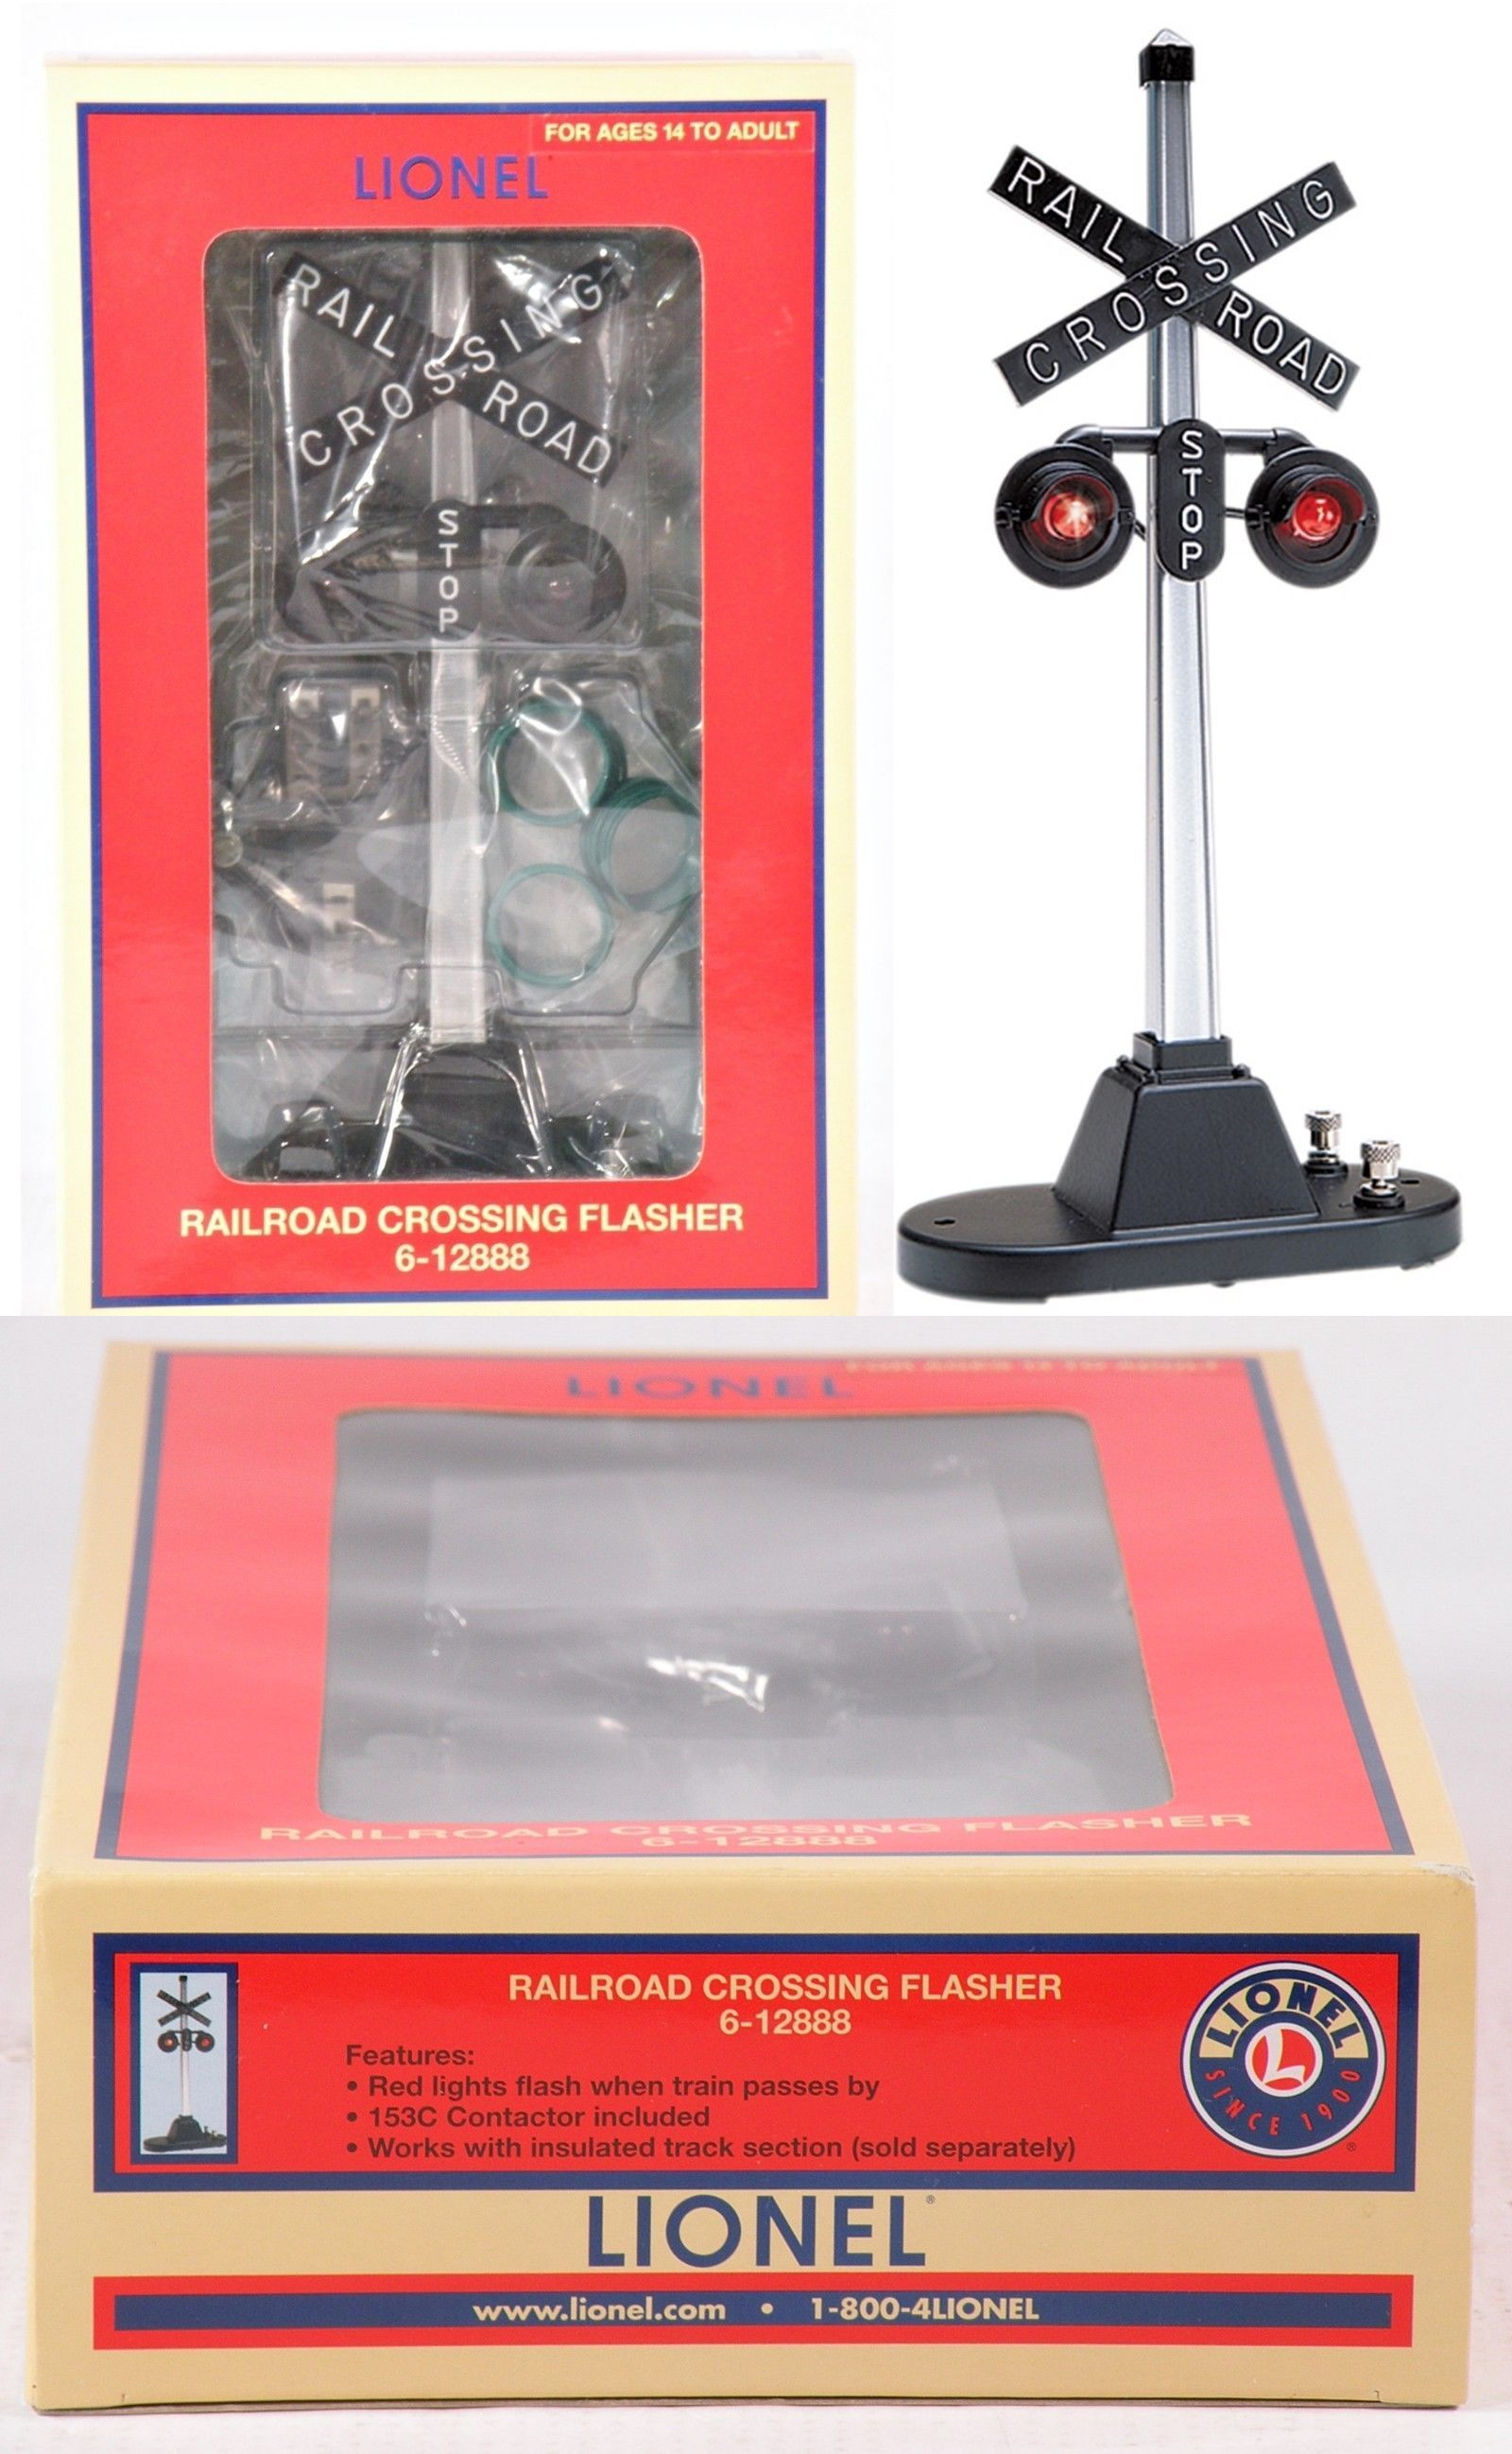 medium resolution of signals 81051 lionel 6 12888 railroad crossing flasher 154 c9 buy it now only 51 on ebay signals lionel railroad crossing flasher